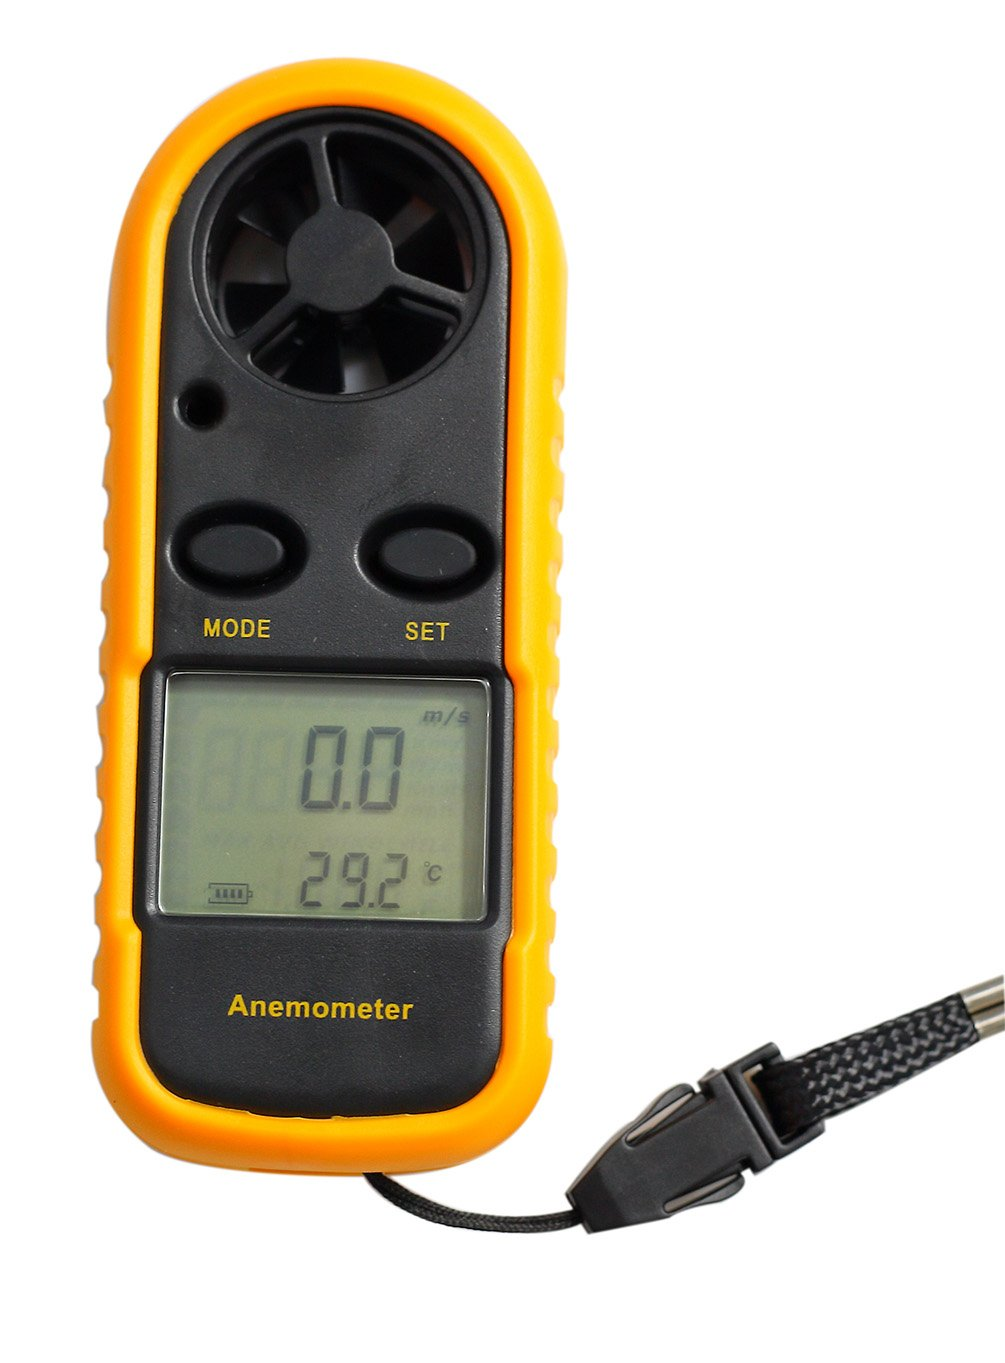 AMTAST Digital LCD Anemometer Wind Speed Measurement,Temperature Function Backlight,Portable for Kite Flying Surfing,Outdoor Activities